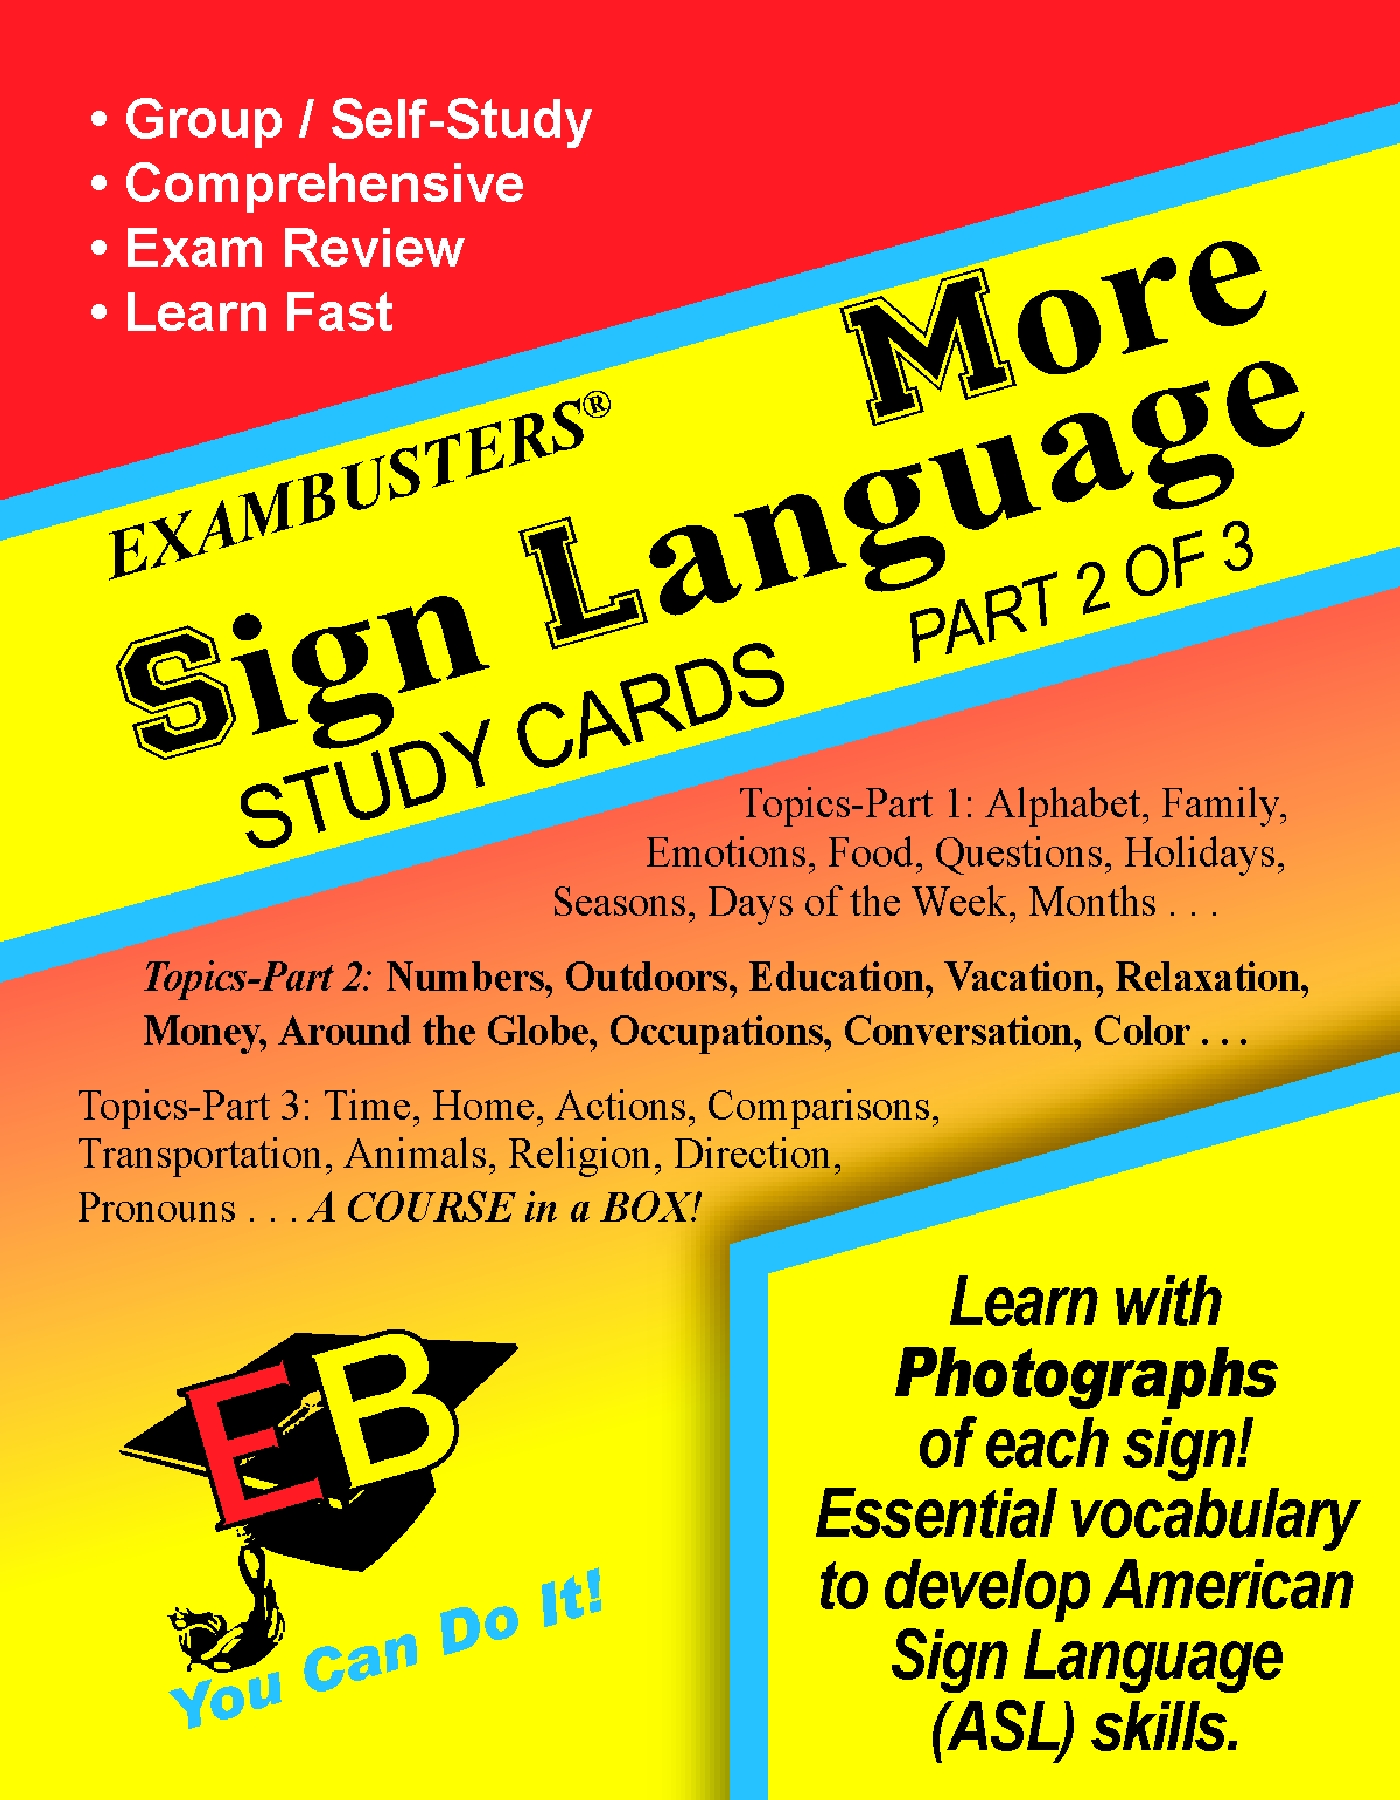 More Sign Language Flash Cards: Part 2 of 3